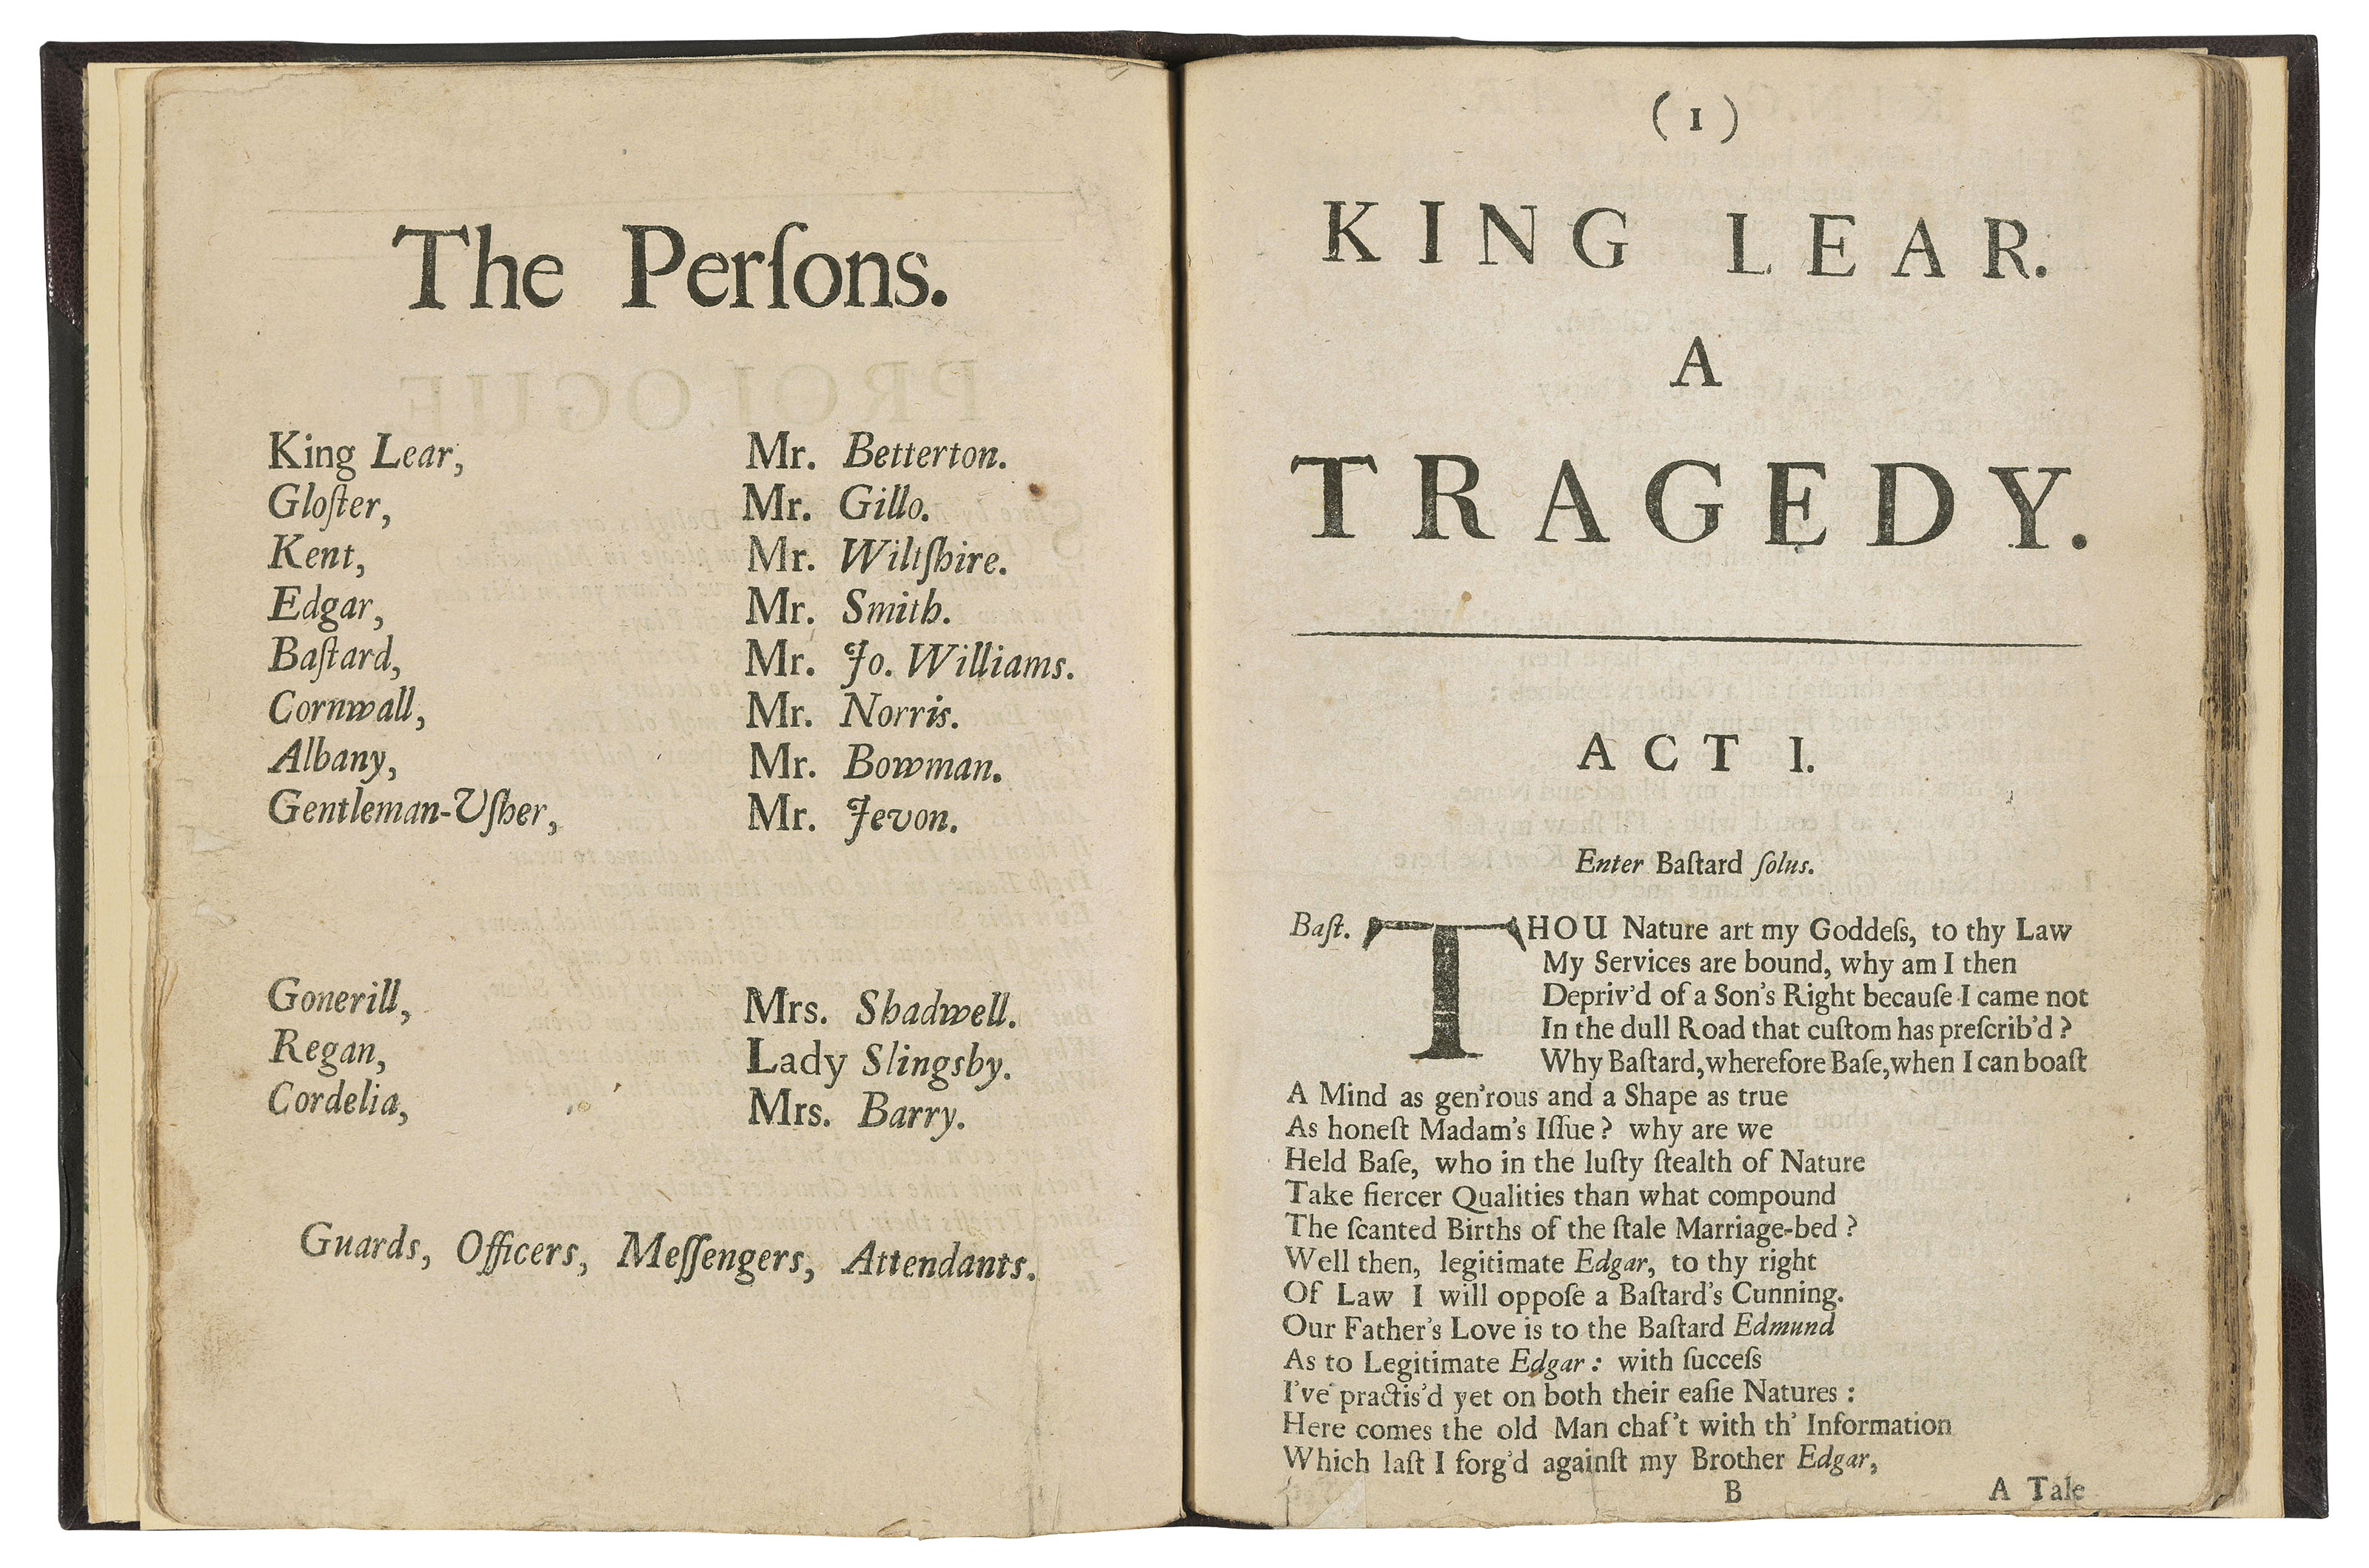 [SHAKESPEARE, William (1564-1616)] – TATE, Nahum (1652-1715). The History of King Lear. Acted at the Duke's Theatre. Reviv'd with alterations. By N. Tate. London: for E. Flesher, to be sold by R. Bentley and M. Magnes, 1681.